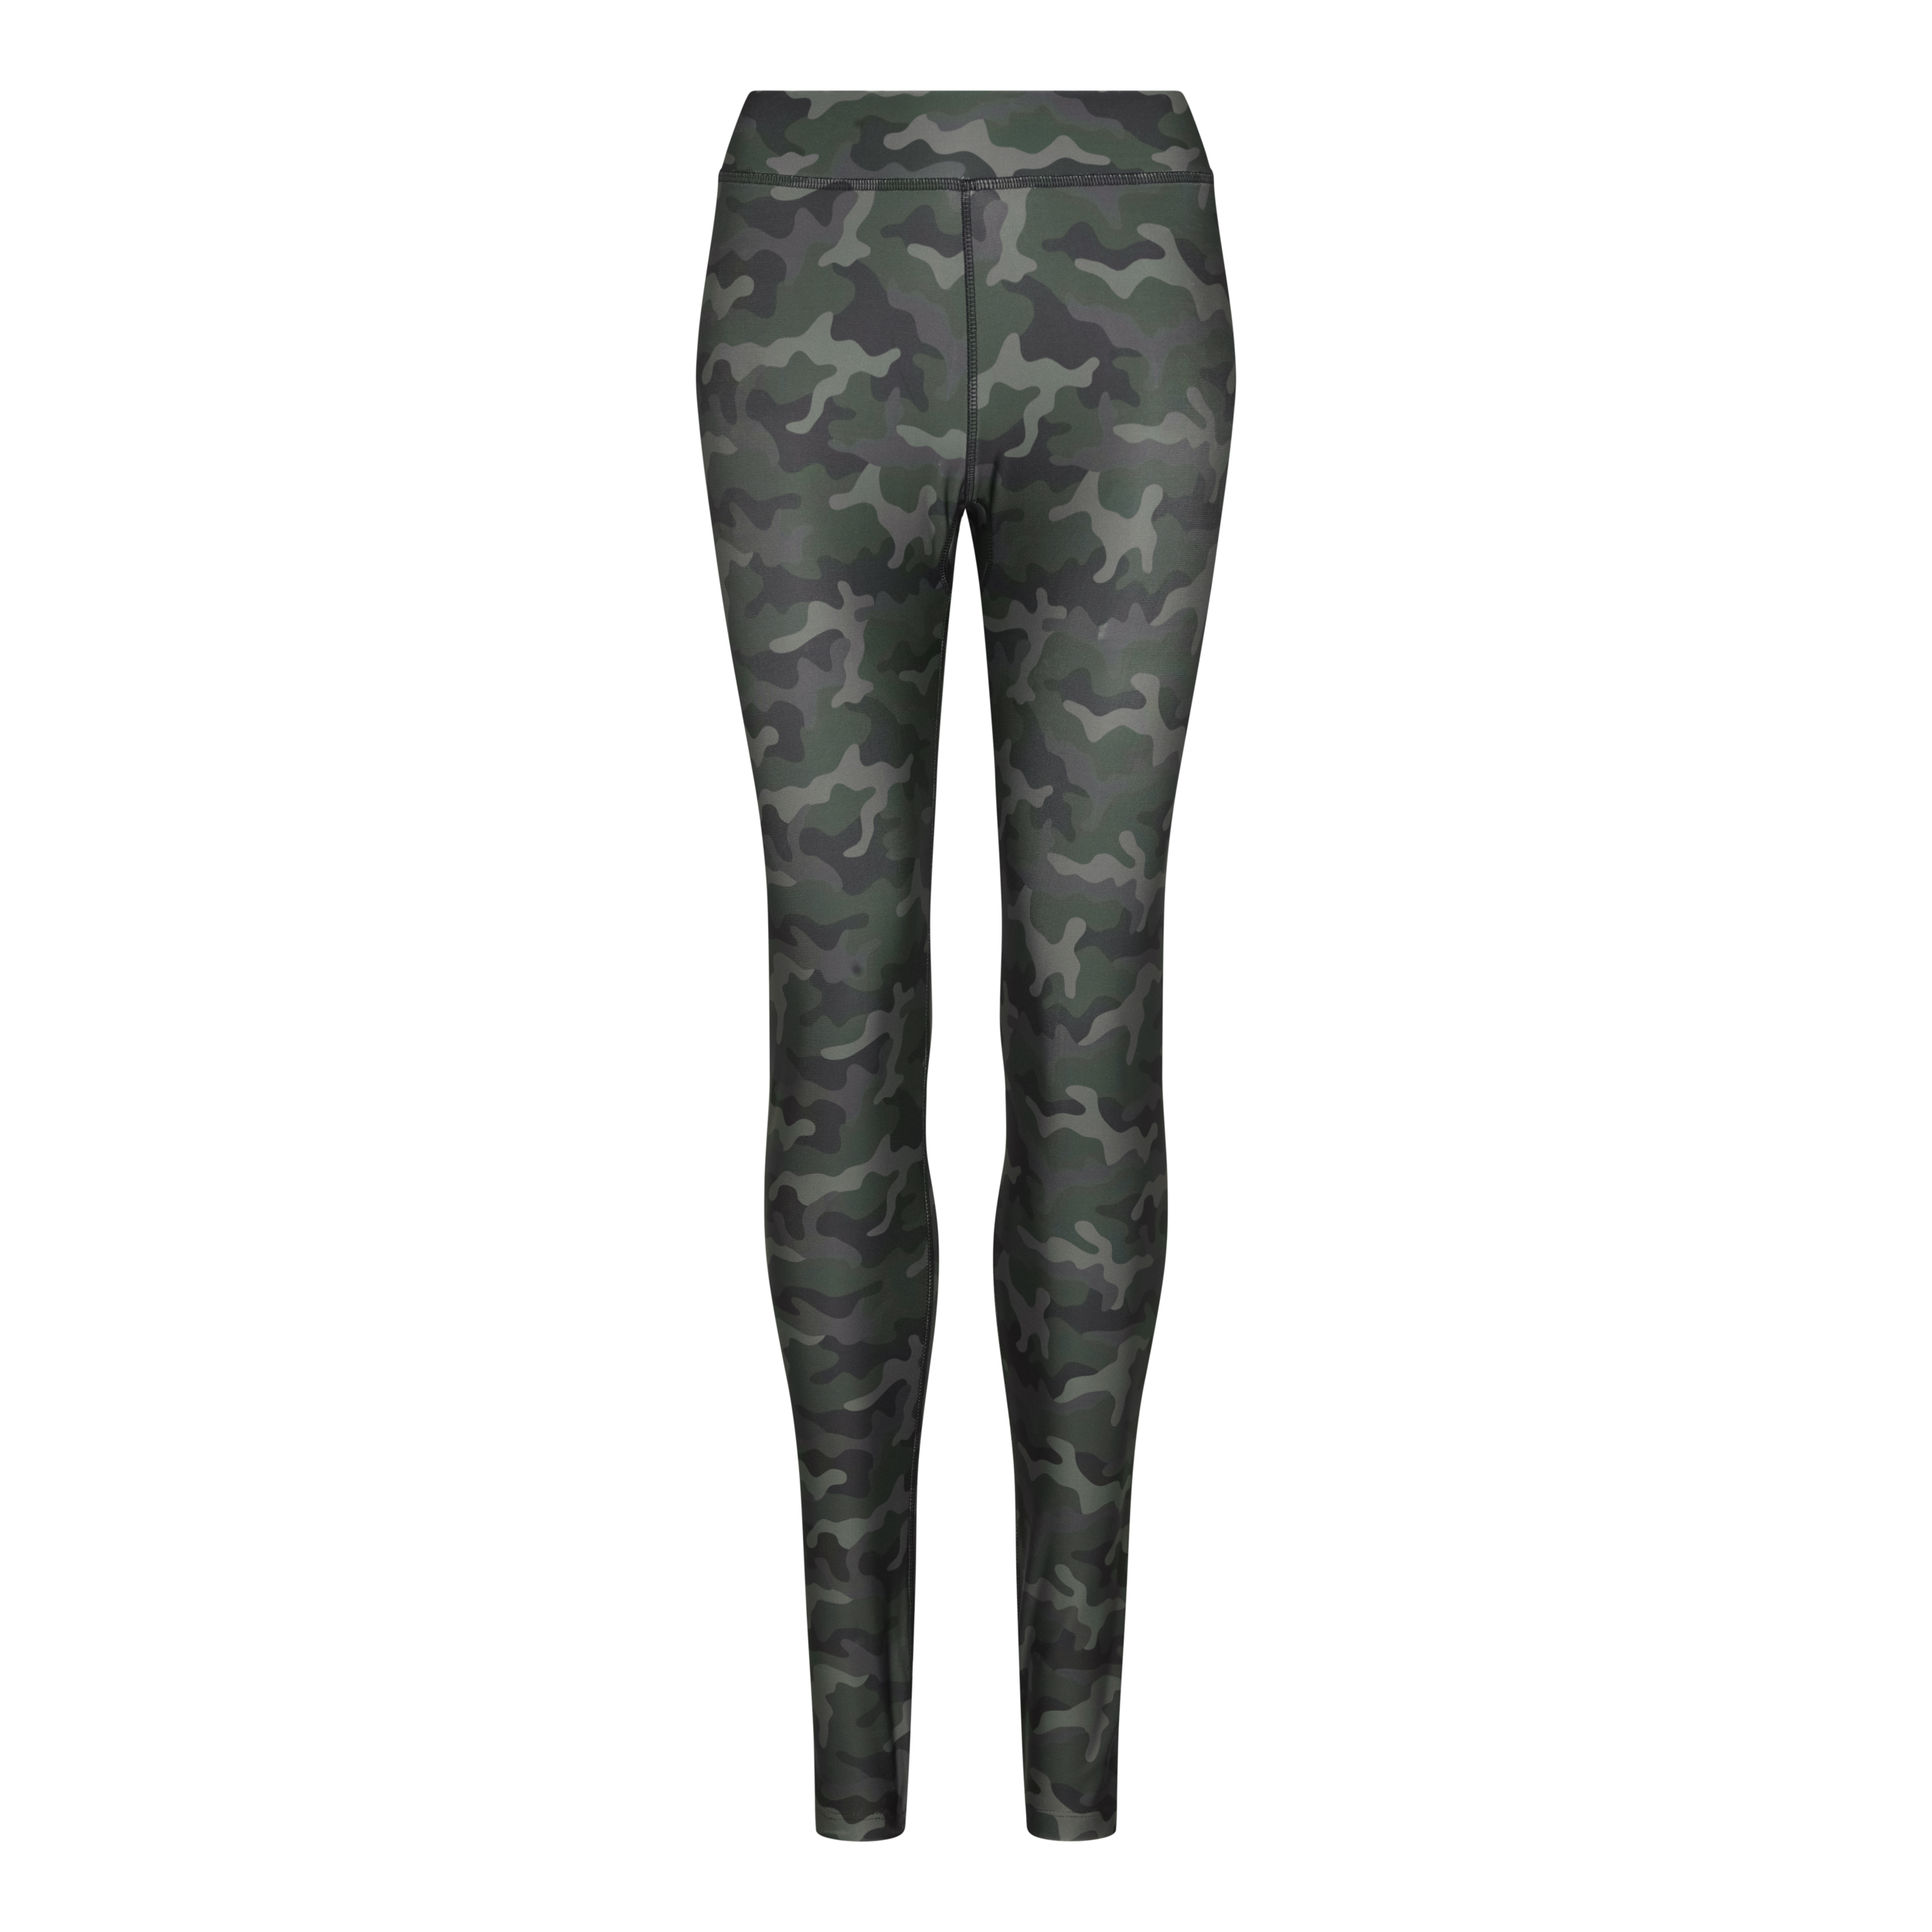 Legging de sport femme Fashion Green Camo